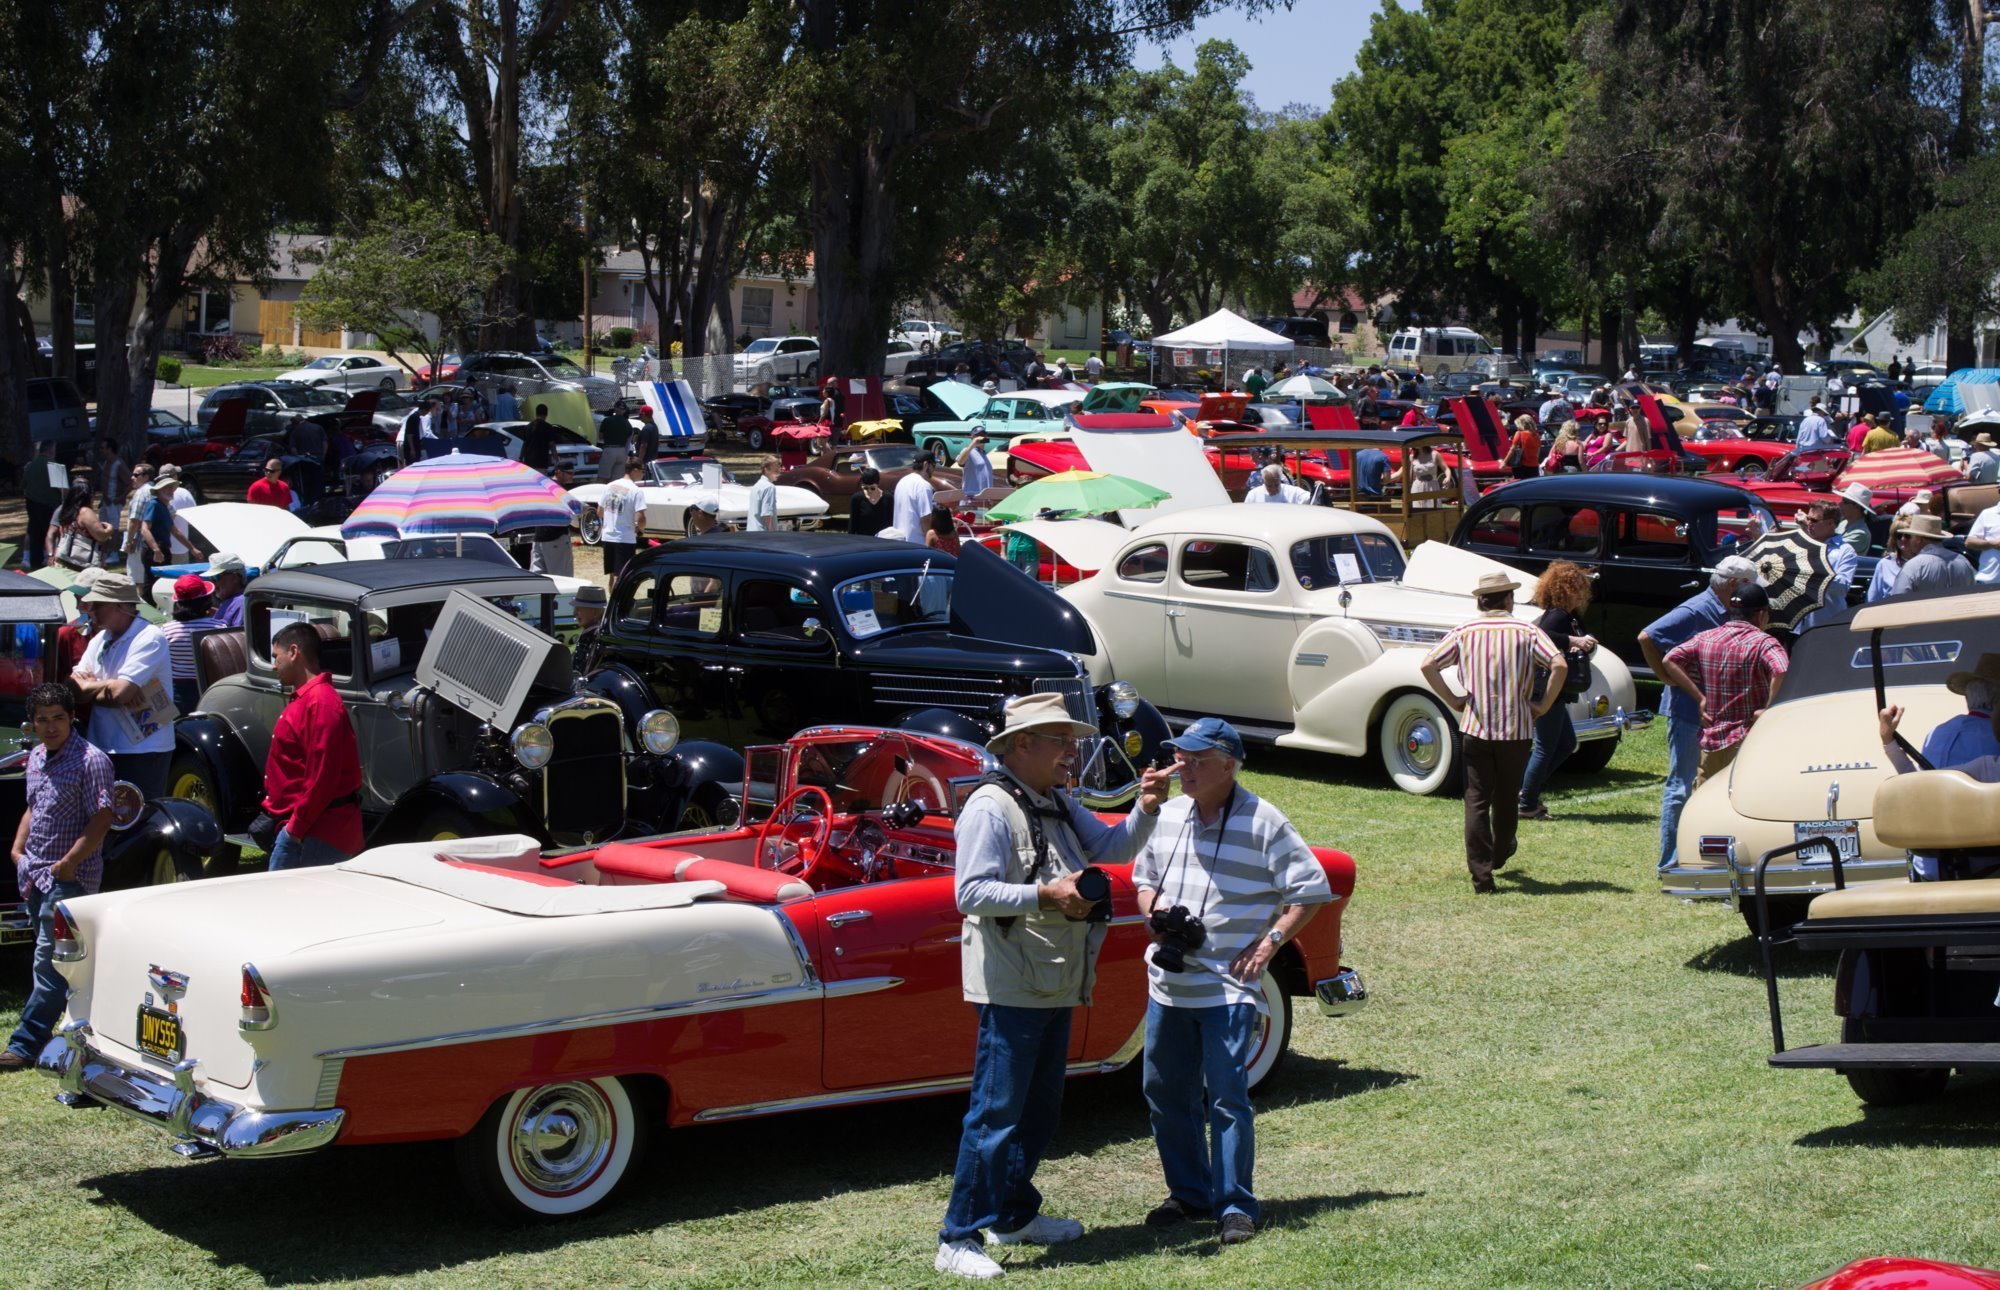 Car Show At The Muck PentaxForumscom - Fullerton car show 2018